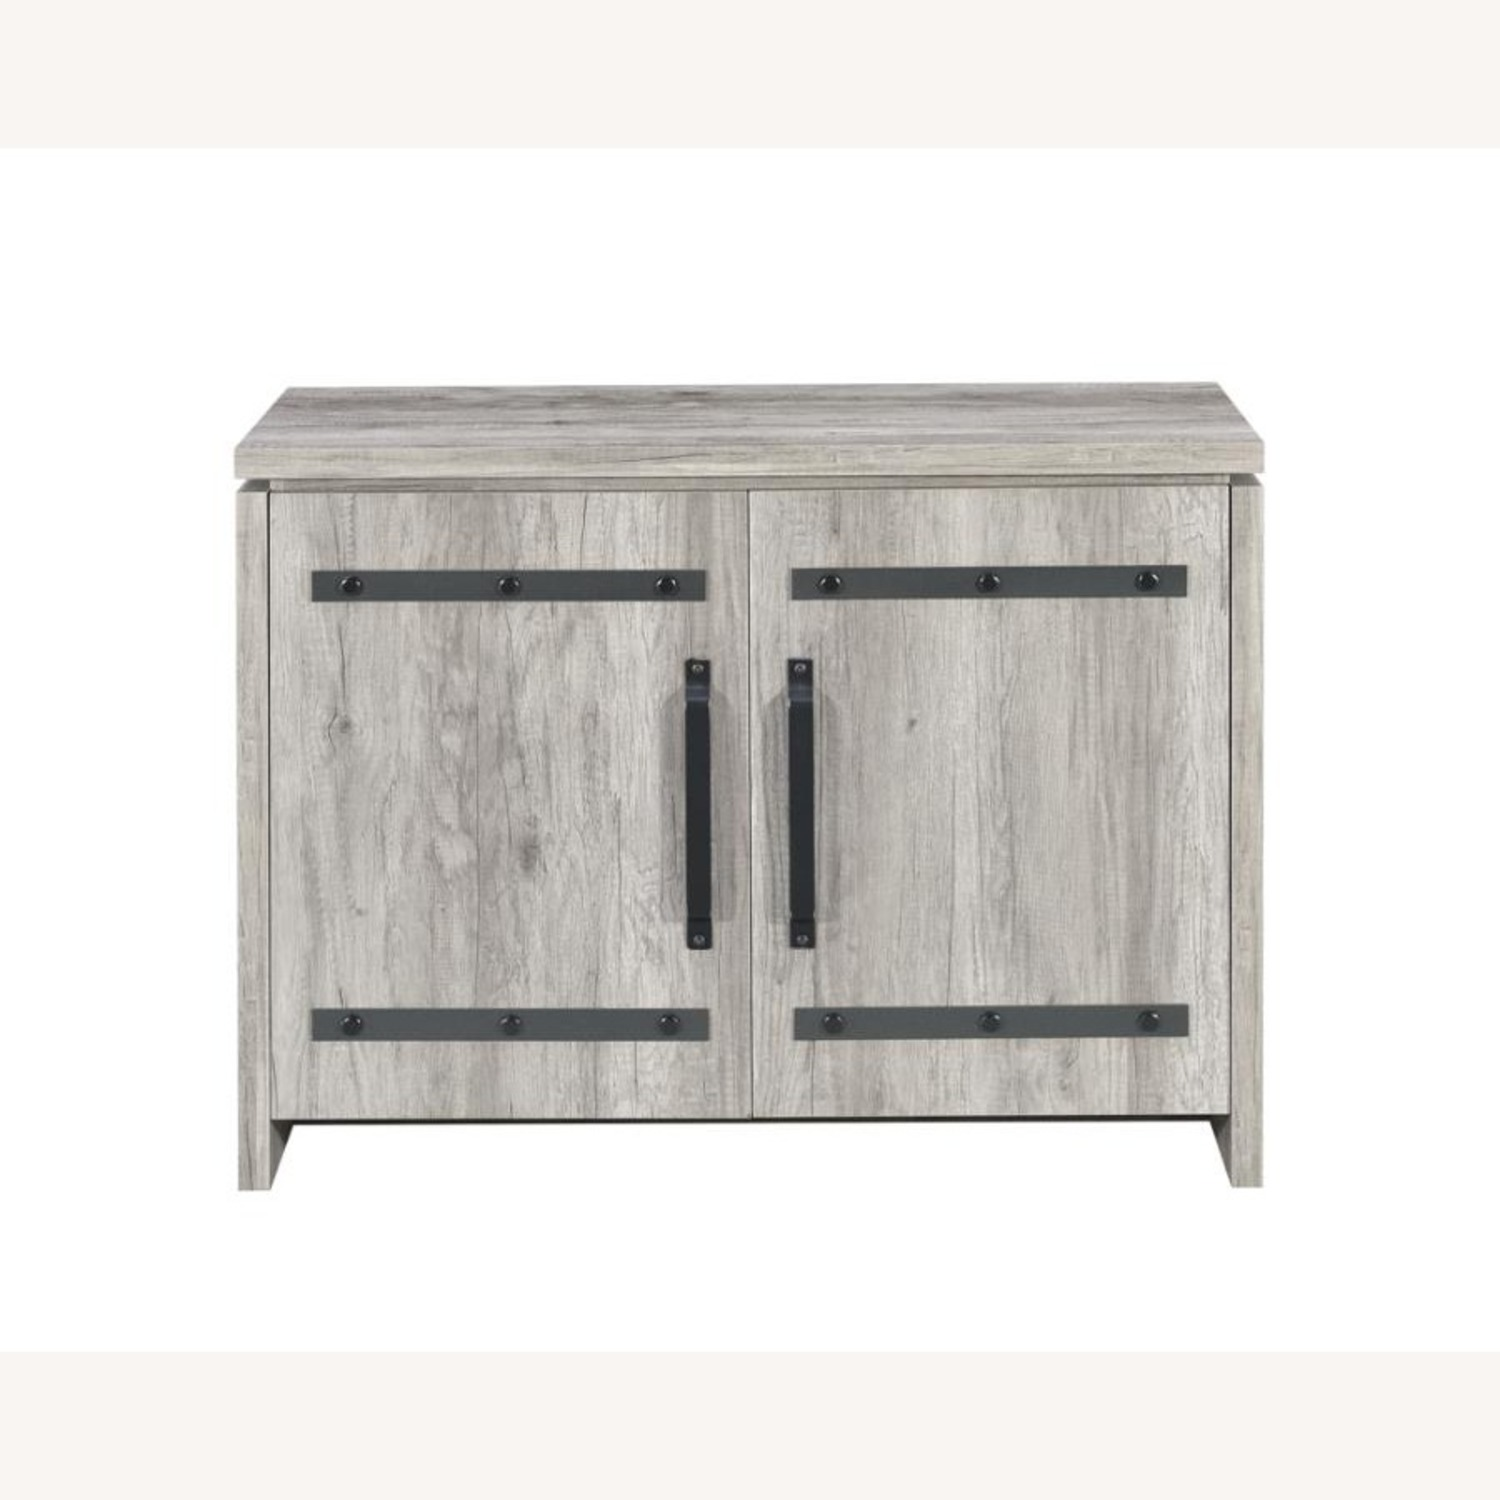 Accent Cabinet In Grey Driftwood W/ Rustic Metals - image-2